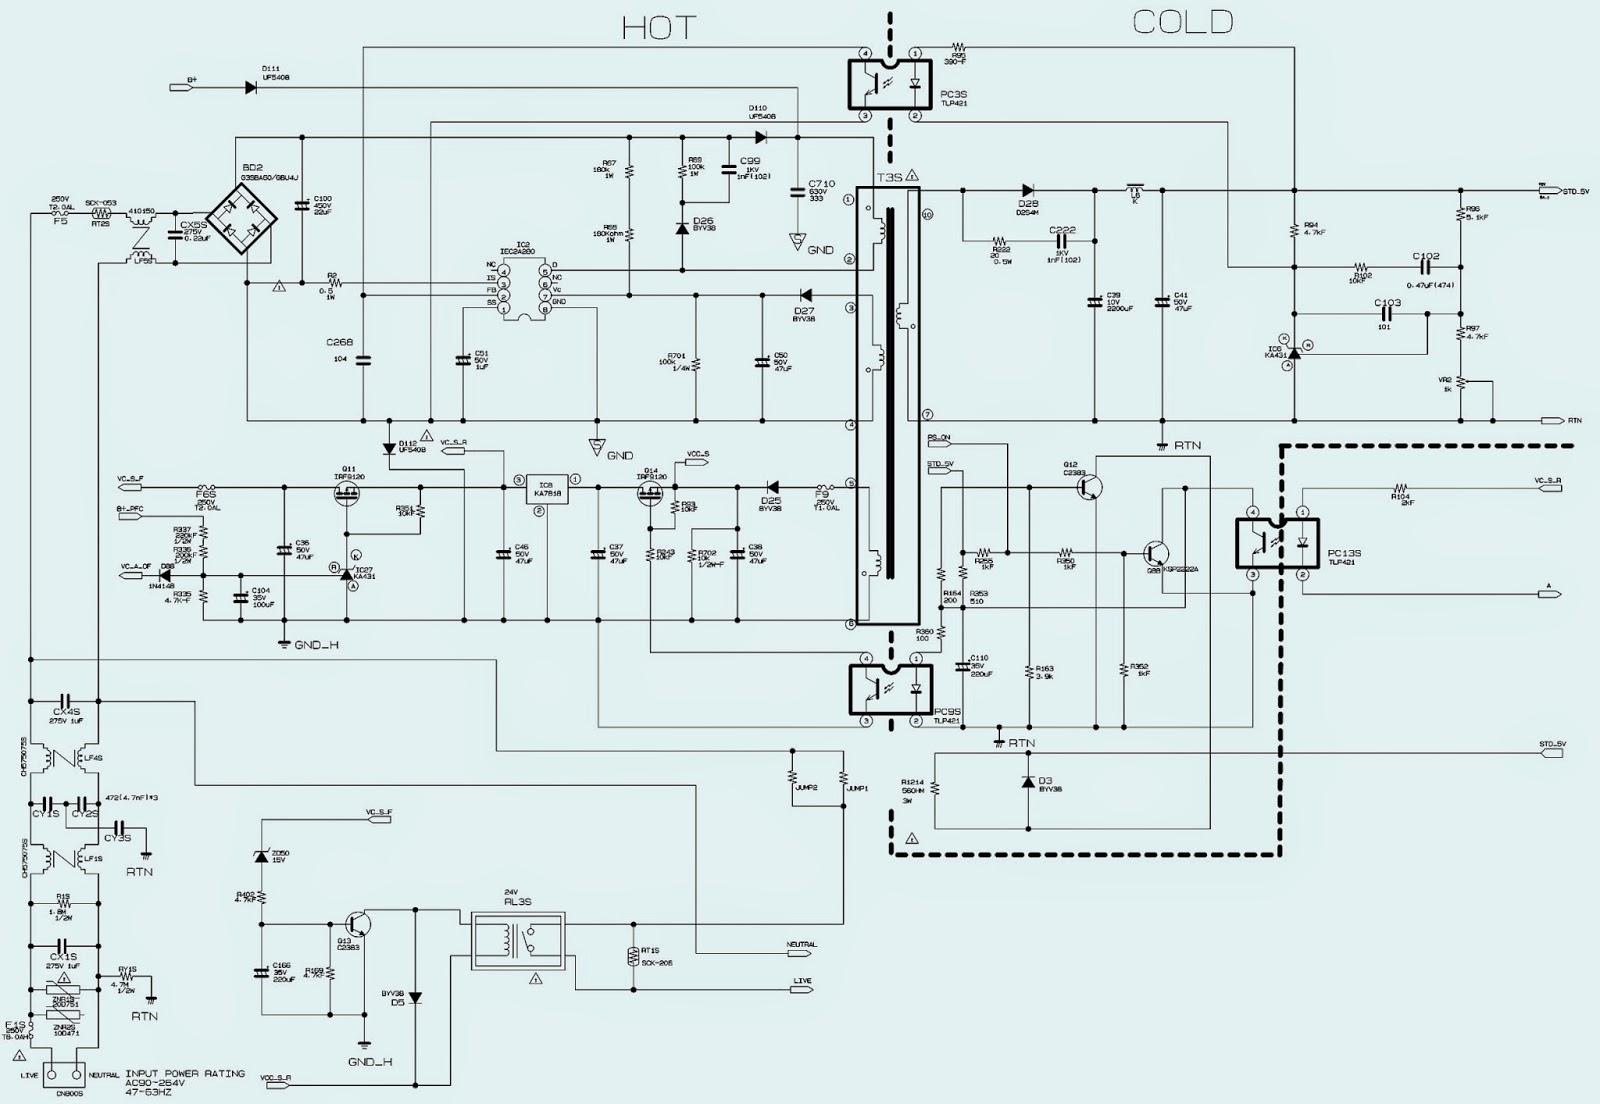 Remarkable Electro Help 32 Inch Philips Lcd Tv Power Supply Smps Schematic Wiring Cloud Hemtegremohammedshrineorg